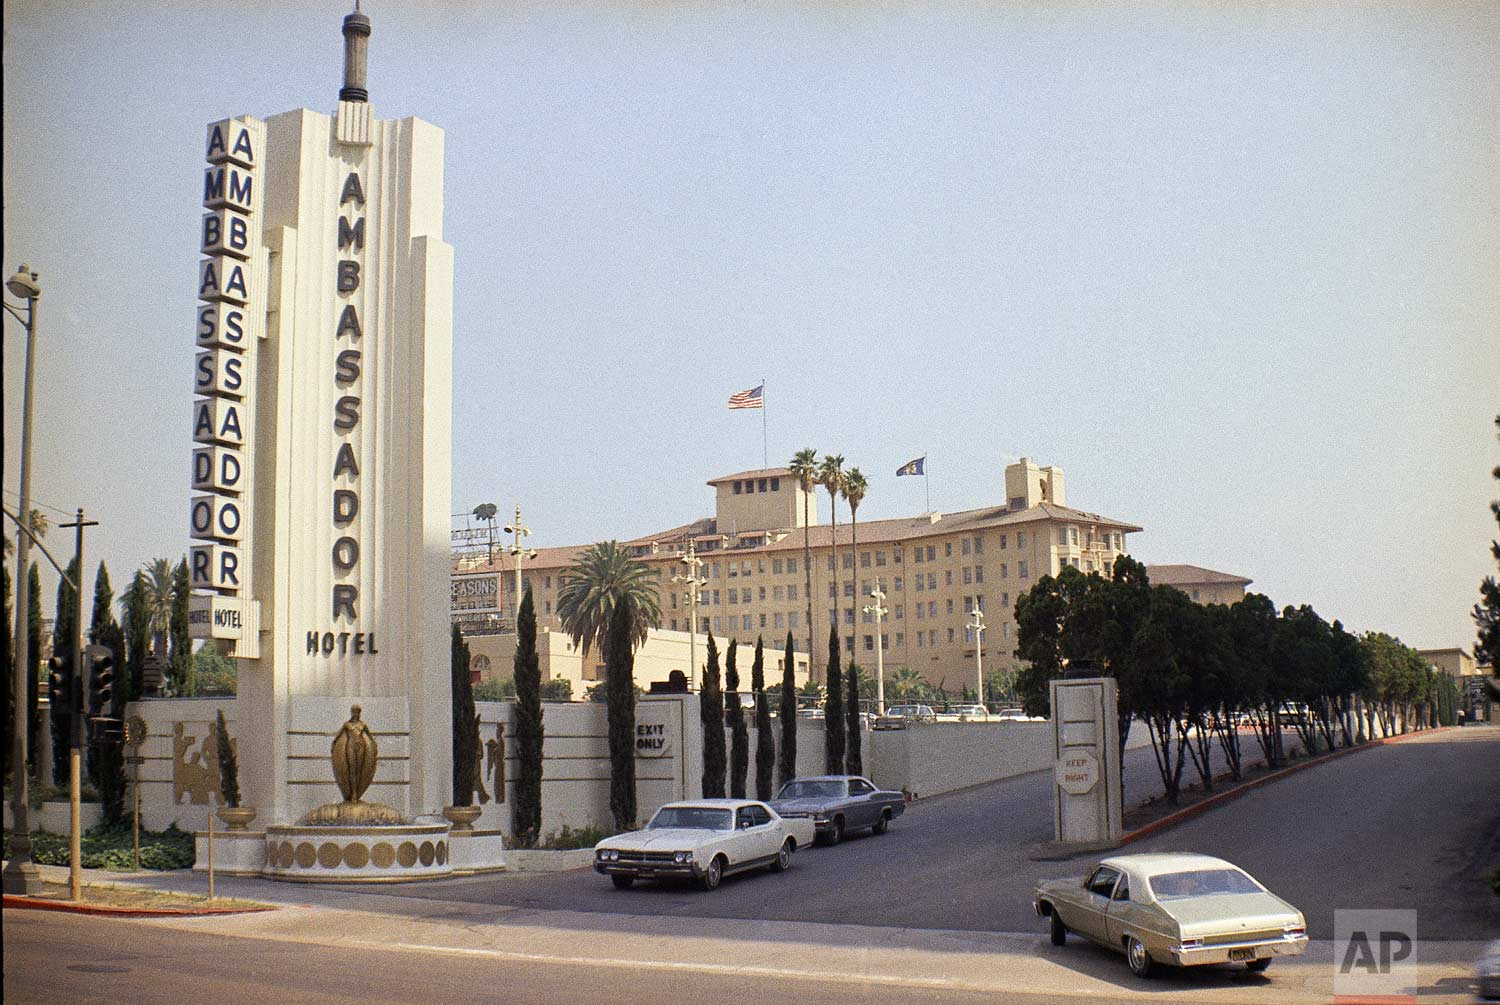 Entrance to the Ambassador hotel in Los Angeles, Calif. on June 28, 1968. It was at the Ambassador Hotel that U.S. Senator Robert F. Kennedy was shot on June 5, 1968 after making a campaign speech. (AP Photo/David F. Smith)